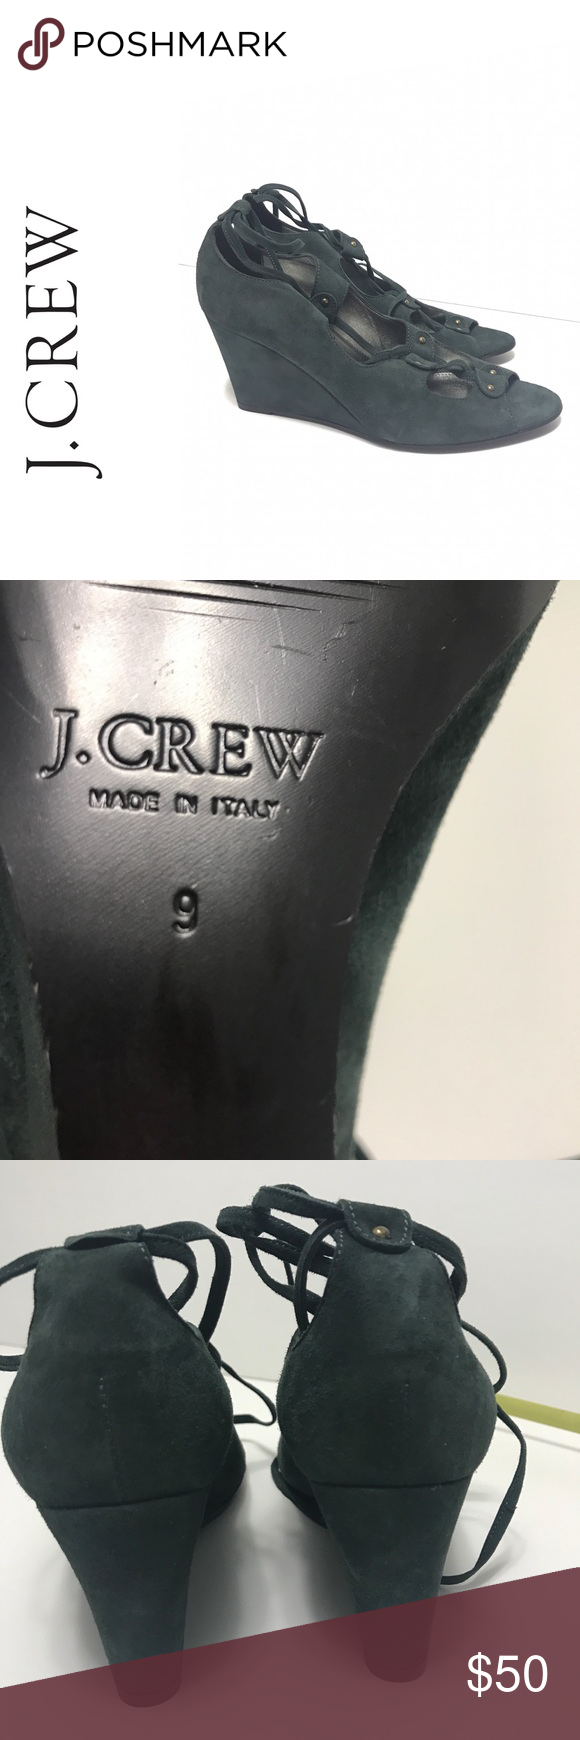 25b53e299c6e Crew Leather Suede Lace Up Shoes Heels Wedges 9 J. Crew Leather Suede Lace  Up Shoes Heels Wedges 9 preowned great condition a dark green J crew J.